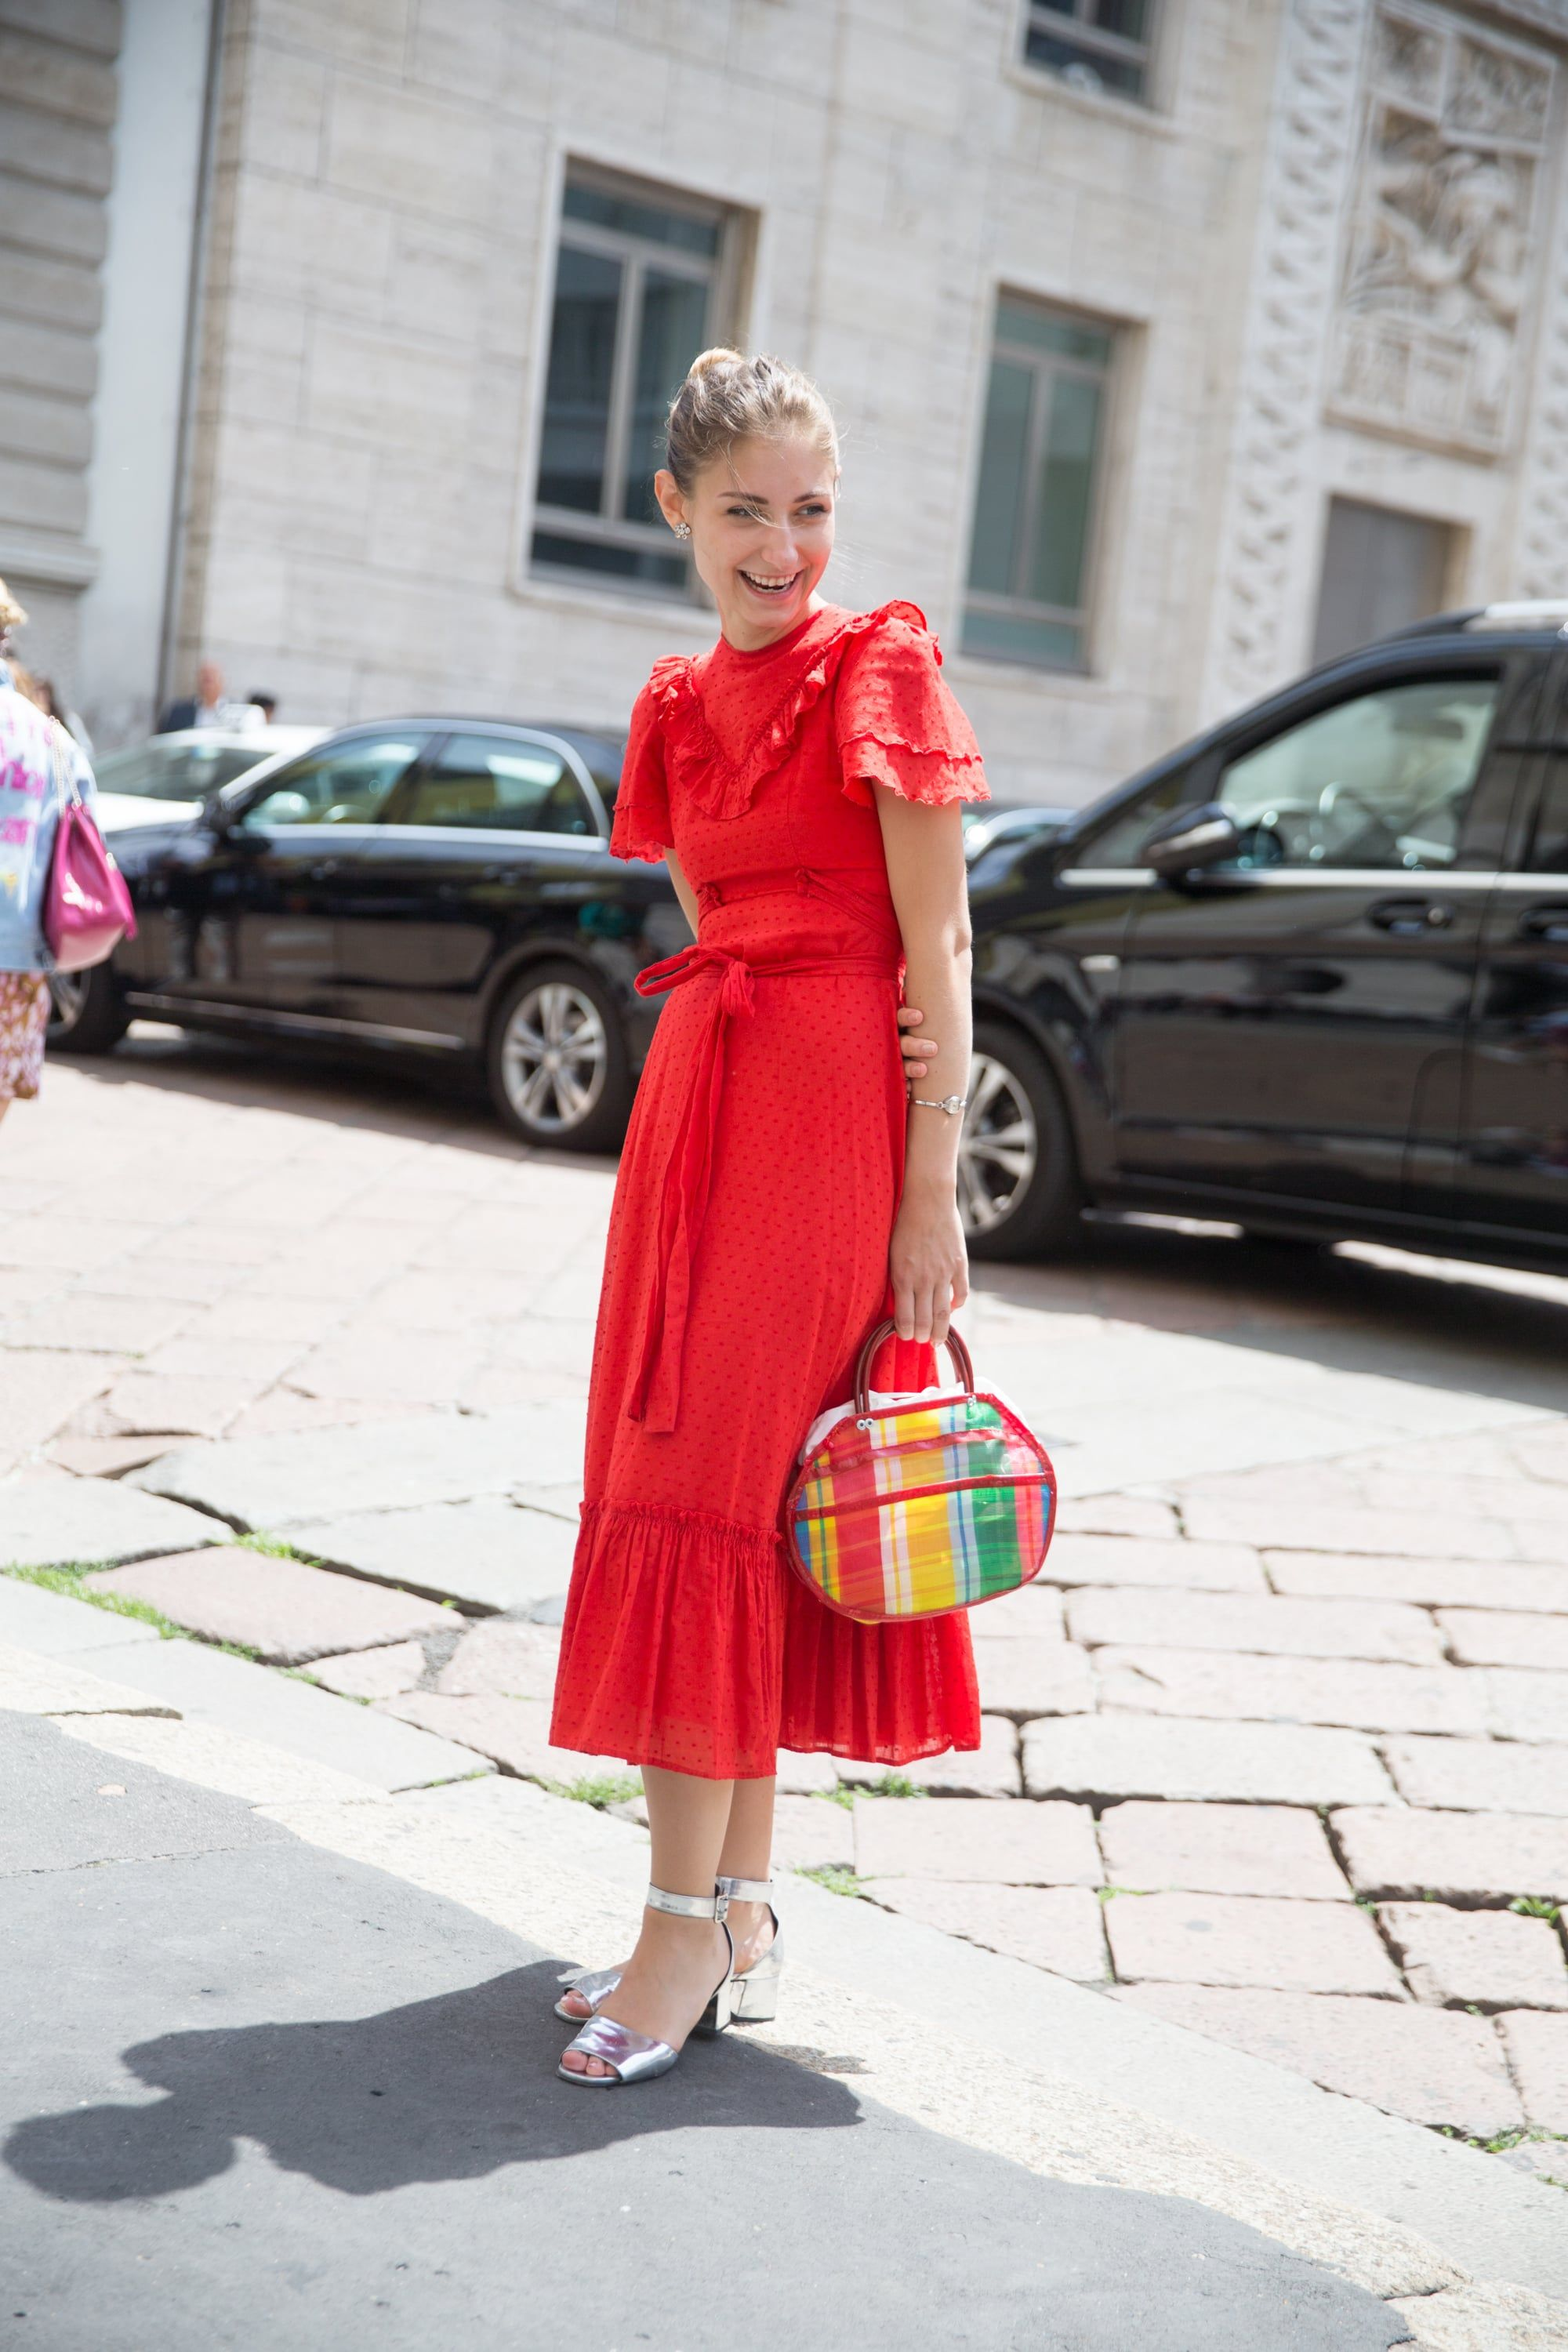 200 summer outfit ideas that are big on style, low on effort